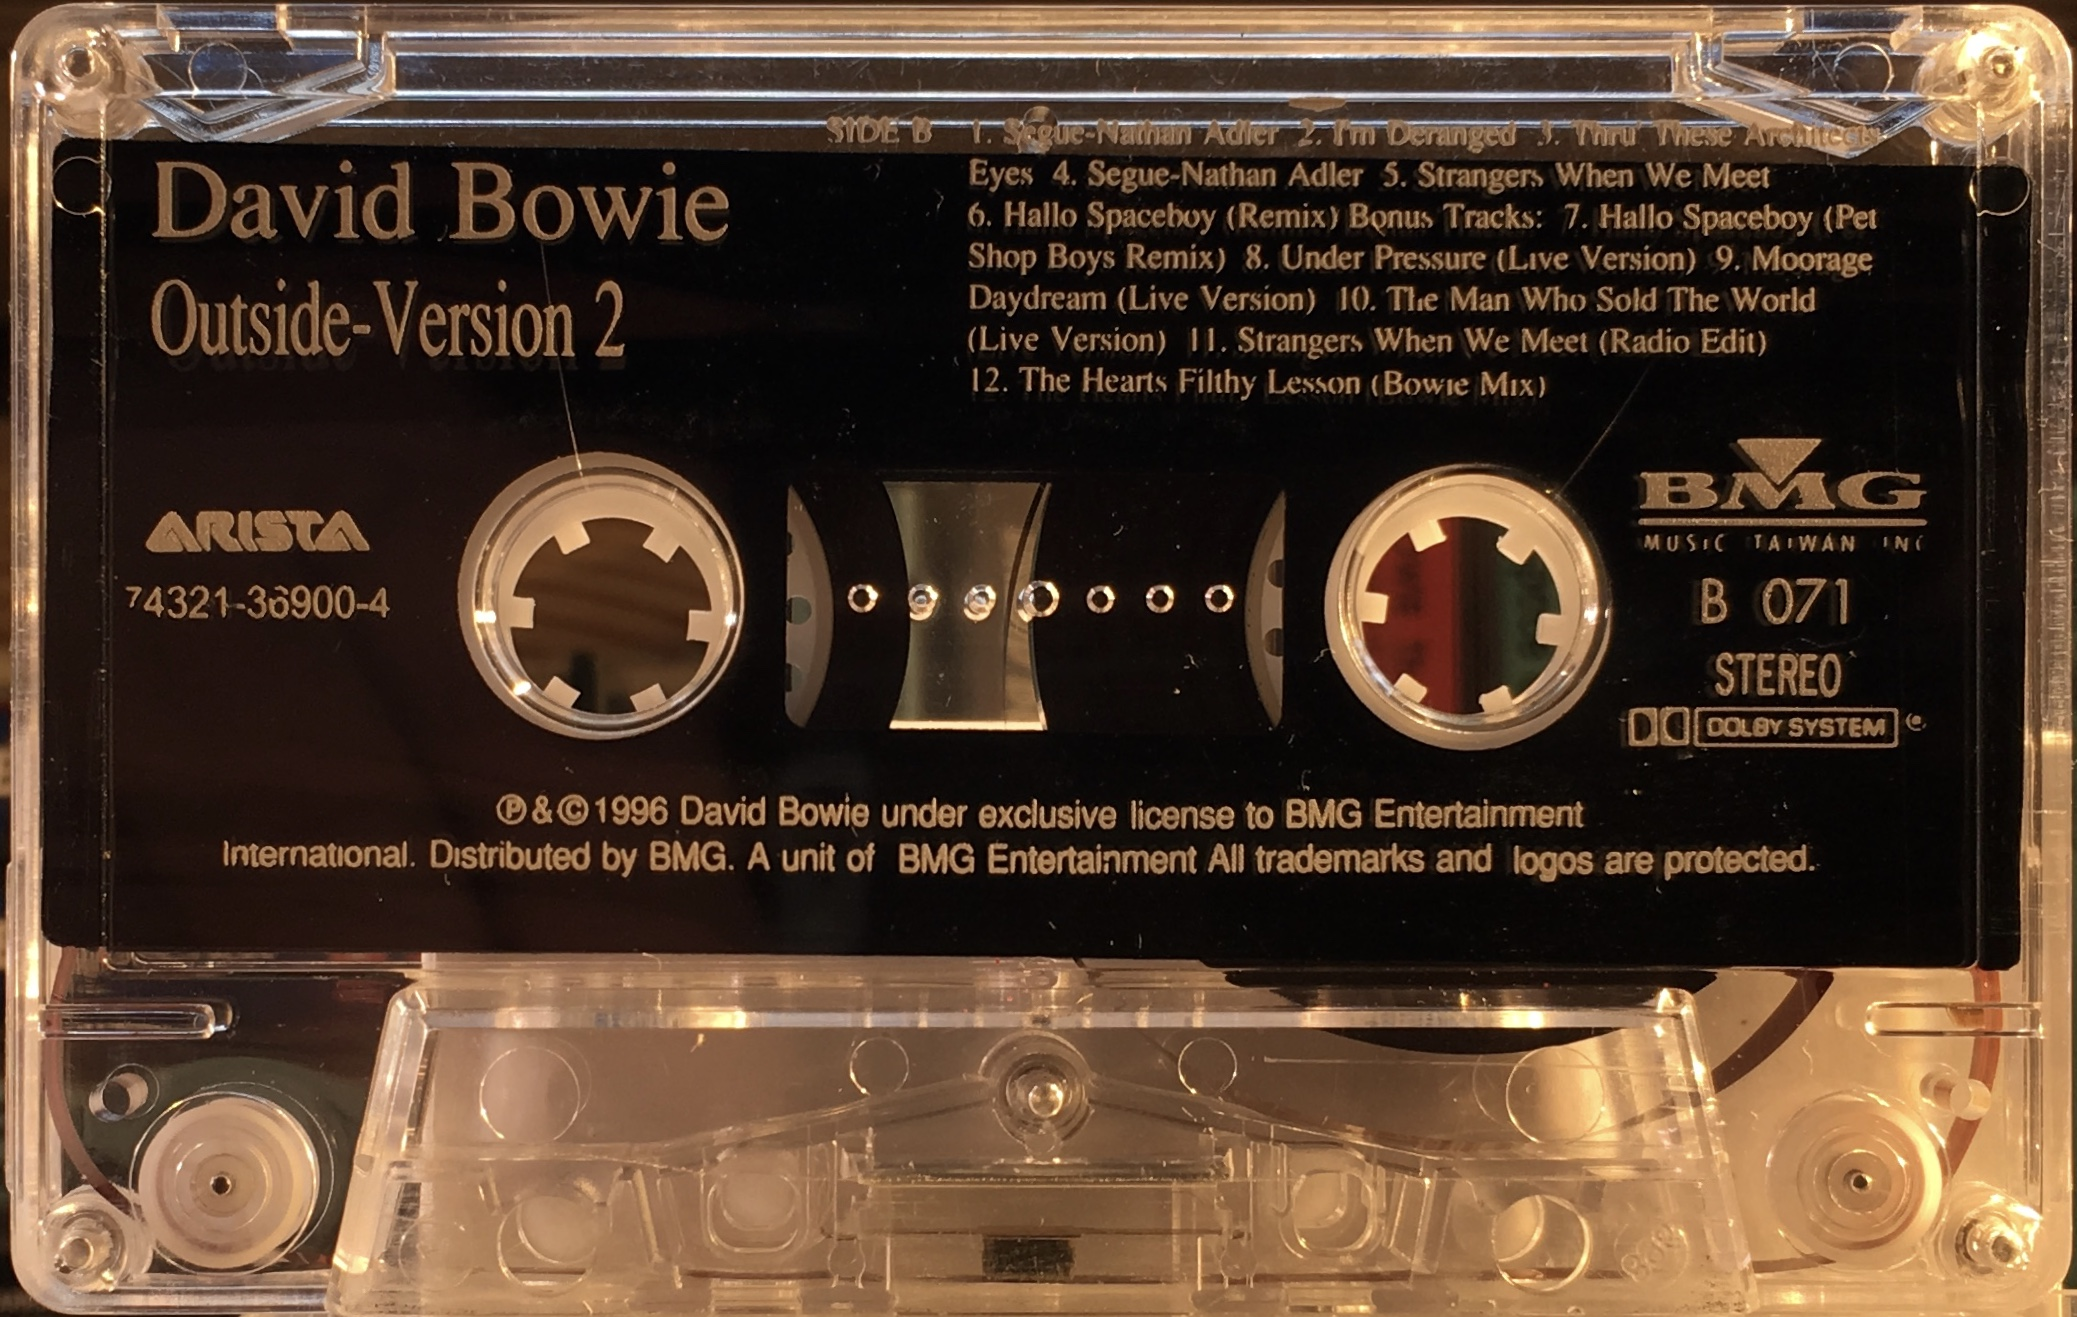 Outside version 2 taiwan bmg arista bowieontape pet shop boys remix under pressure live version moonage daydream live version the man who sold the world live version strangers when we meet m4hsunfo